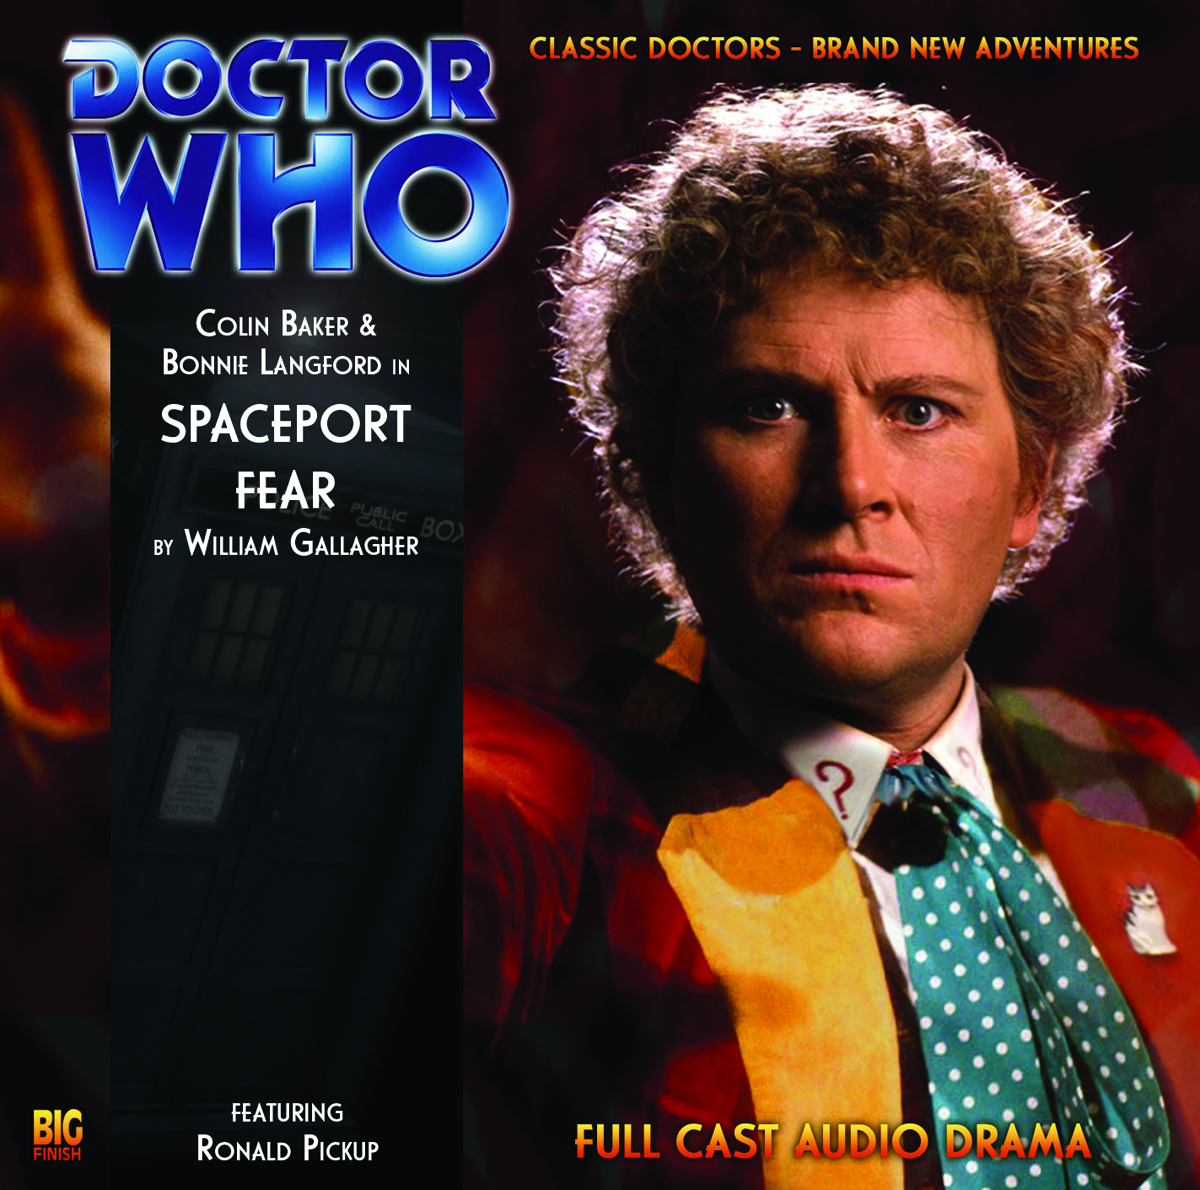 DOCTOR WHO SPACEPORT FEAR AUDIO CD